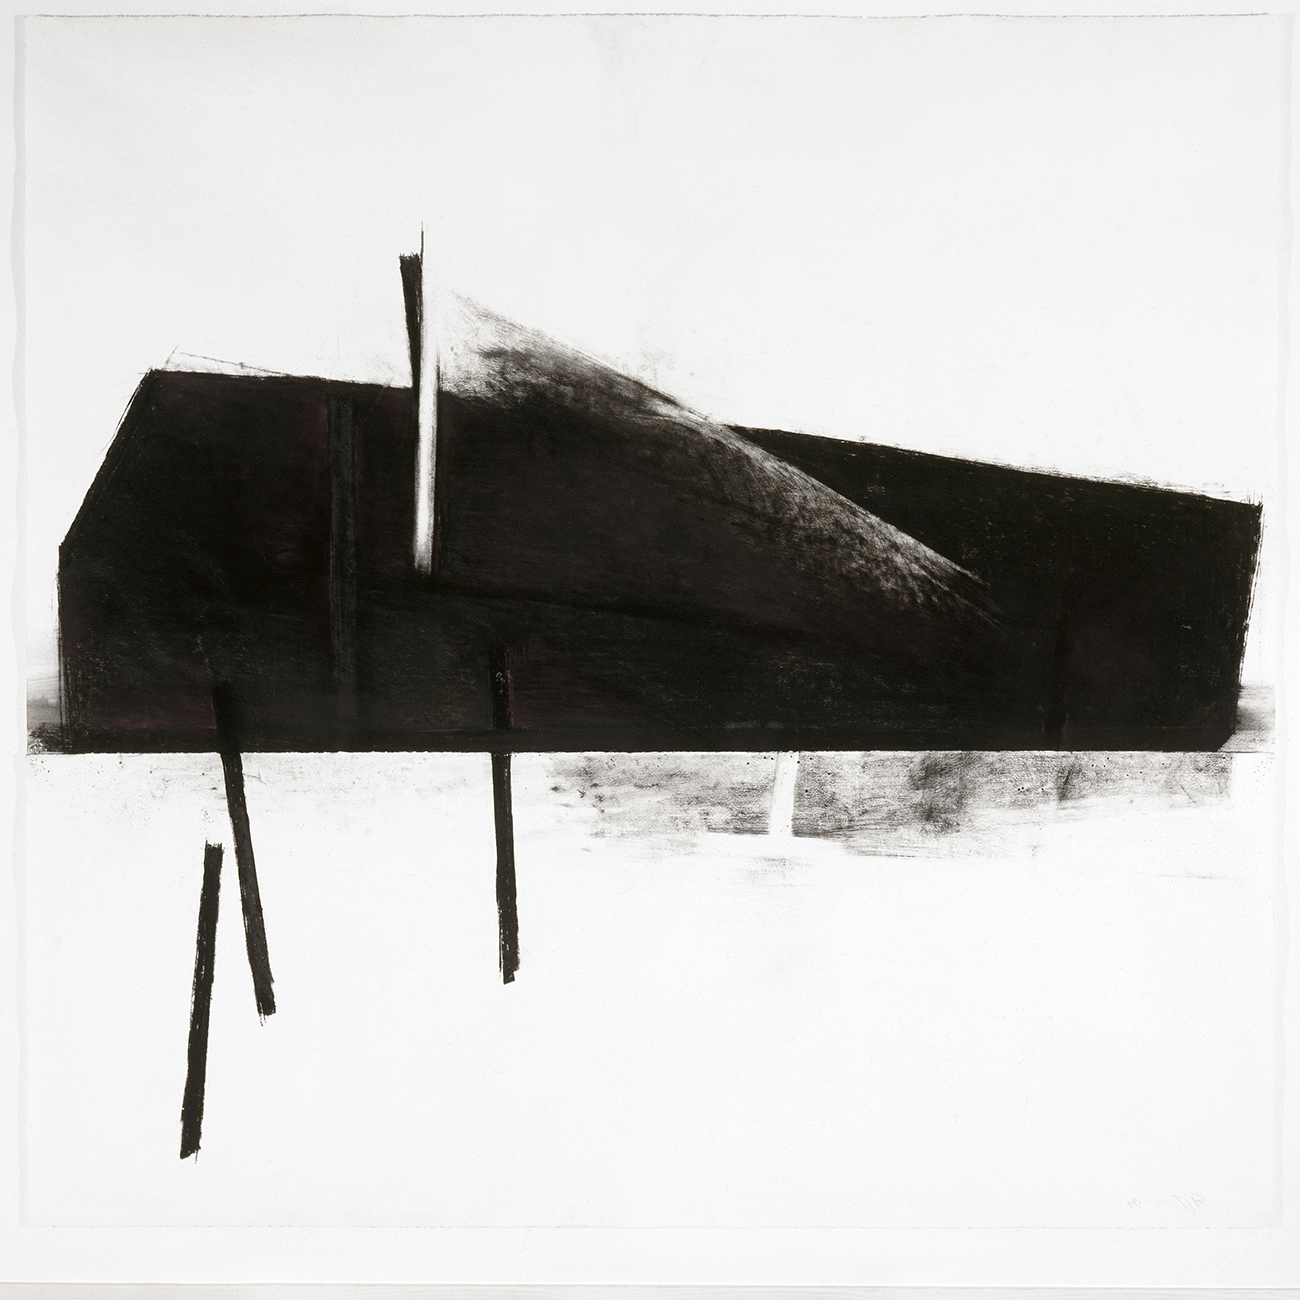 Malgré la nuit VIII  (1990 - 1991)   Fusain, pastel et graphite, 145 x 127 cm. photo : Richard-Max Tremblay